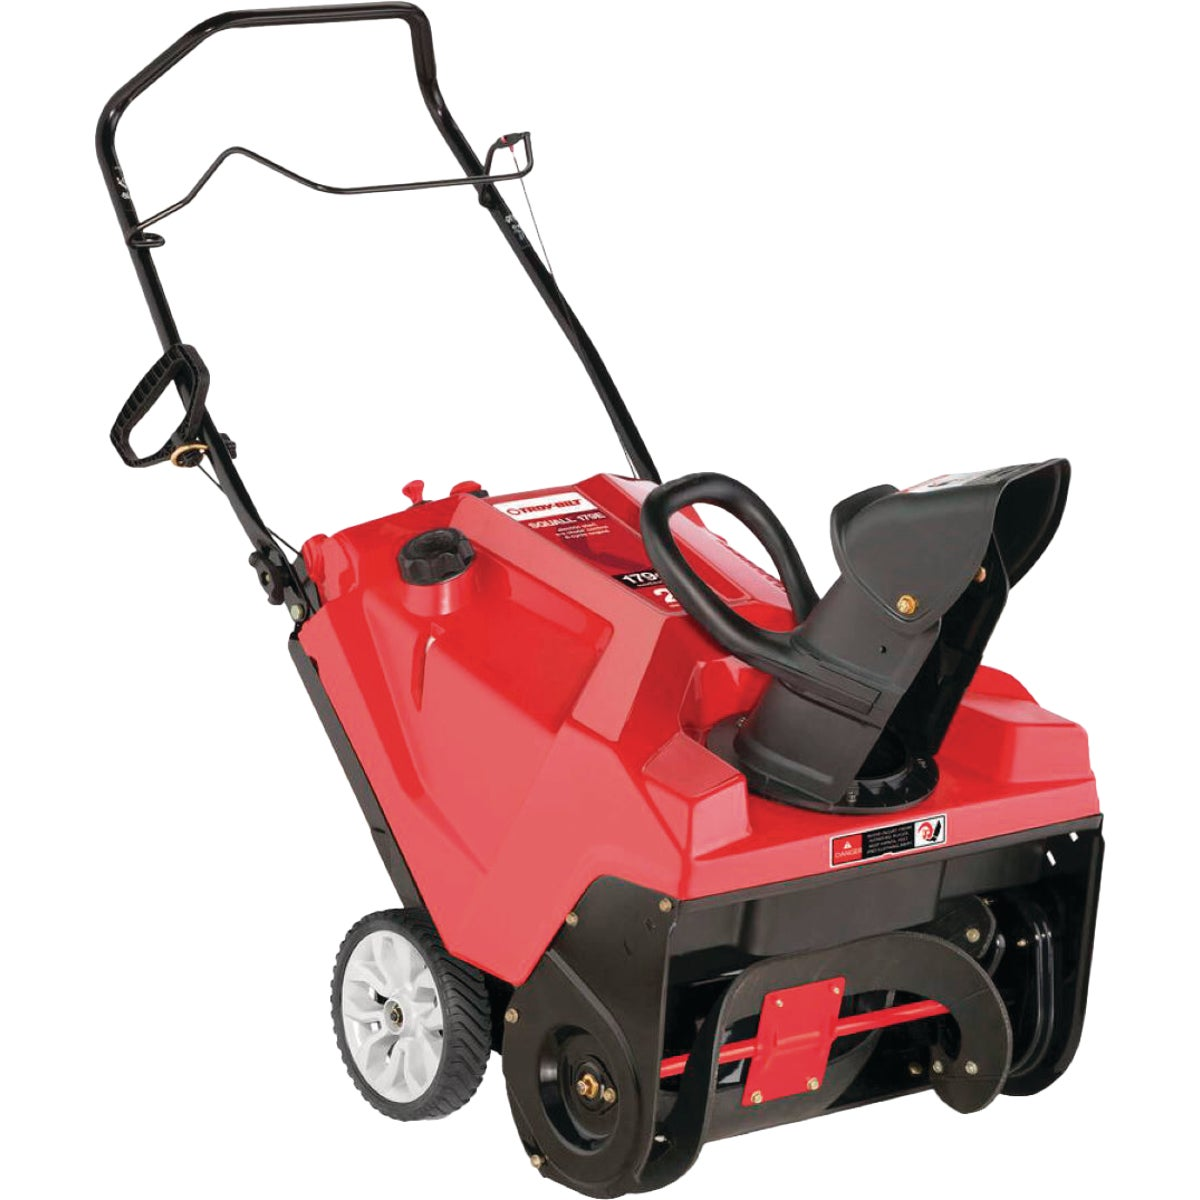 4-CYCLE SNOWTHROWER - 31AS2S1E700 by M T D Products